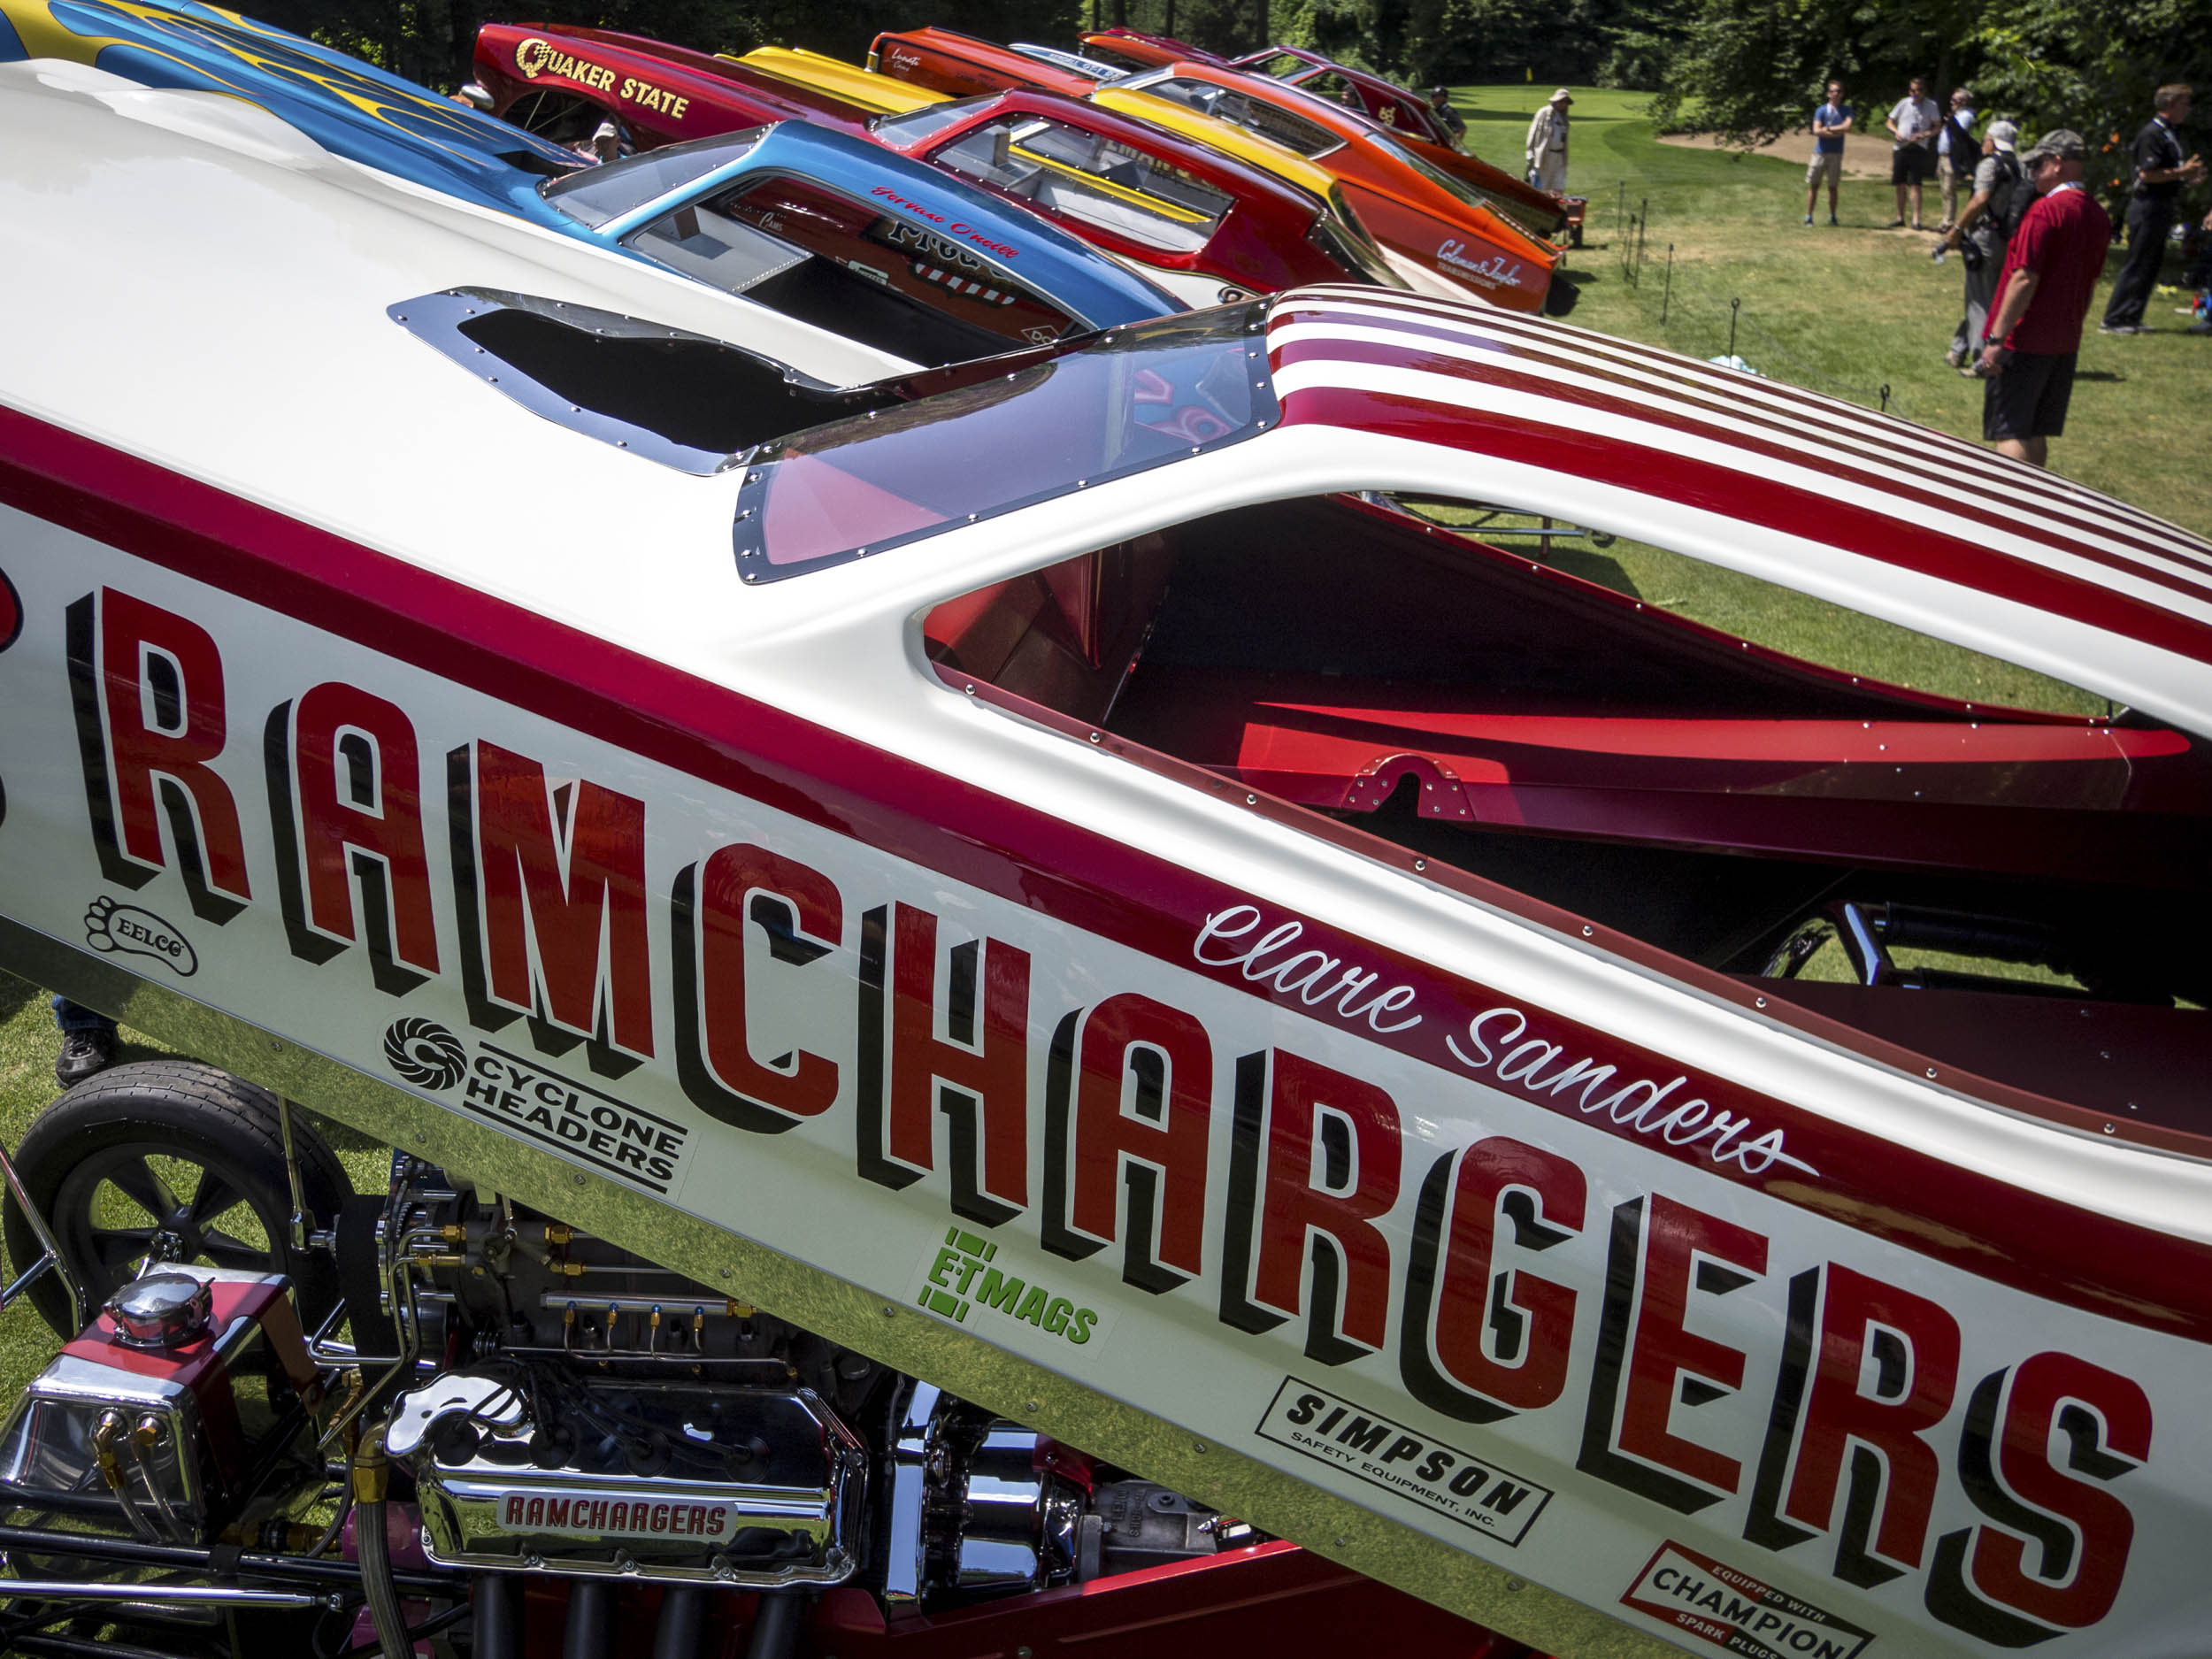 Old School funny cars